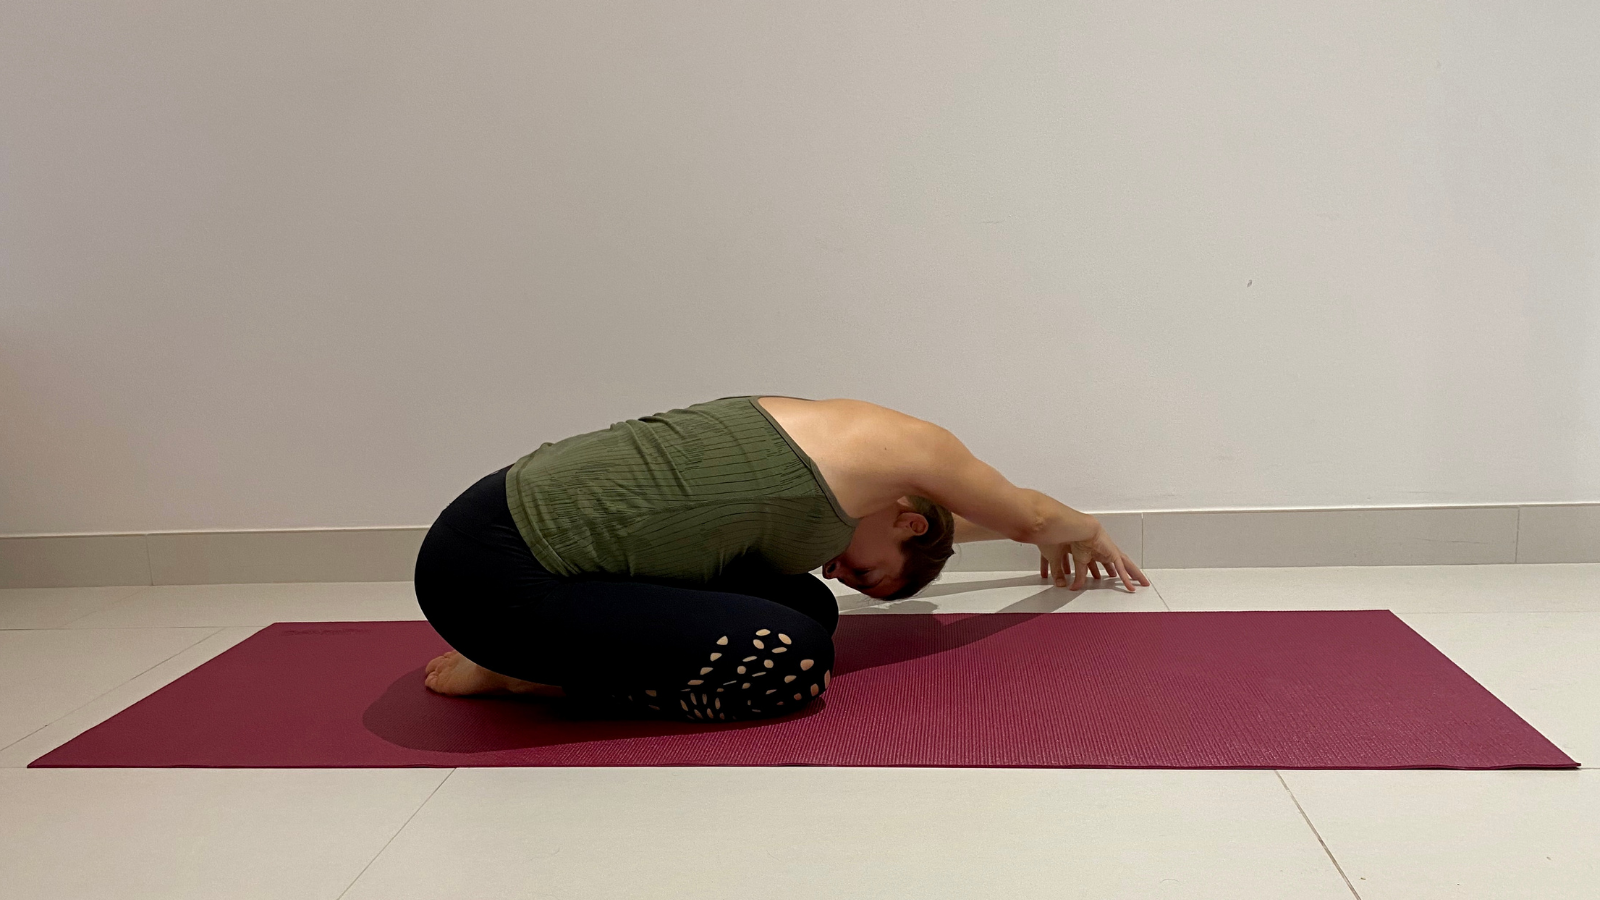 The benefits of practicing Side Reaching Child's Pose (Balasana) to stretch muscles of the back body and ease back pain